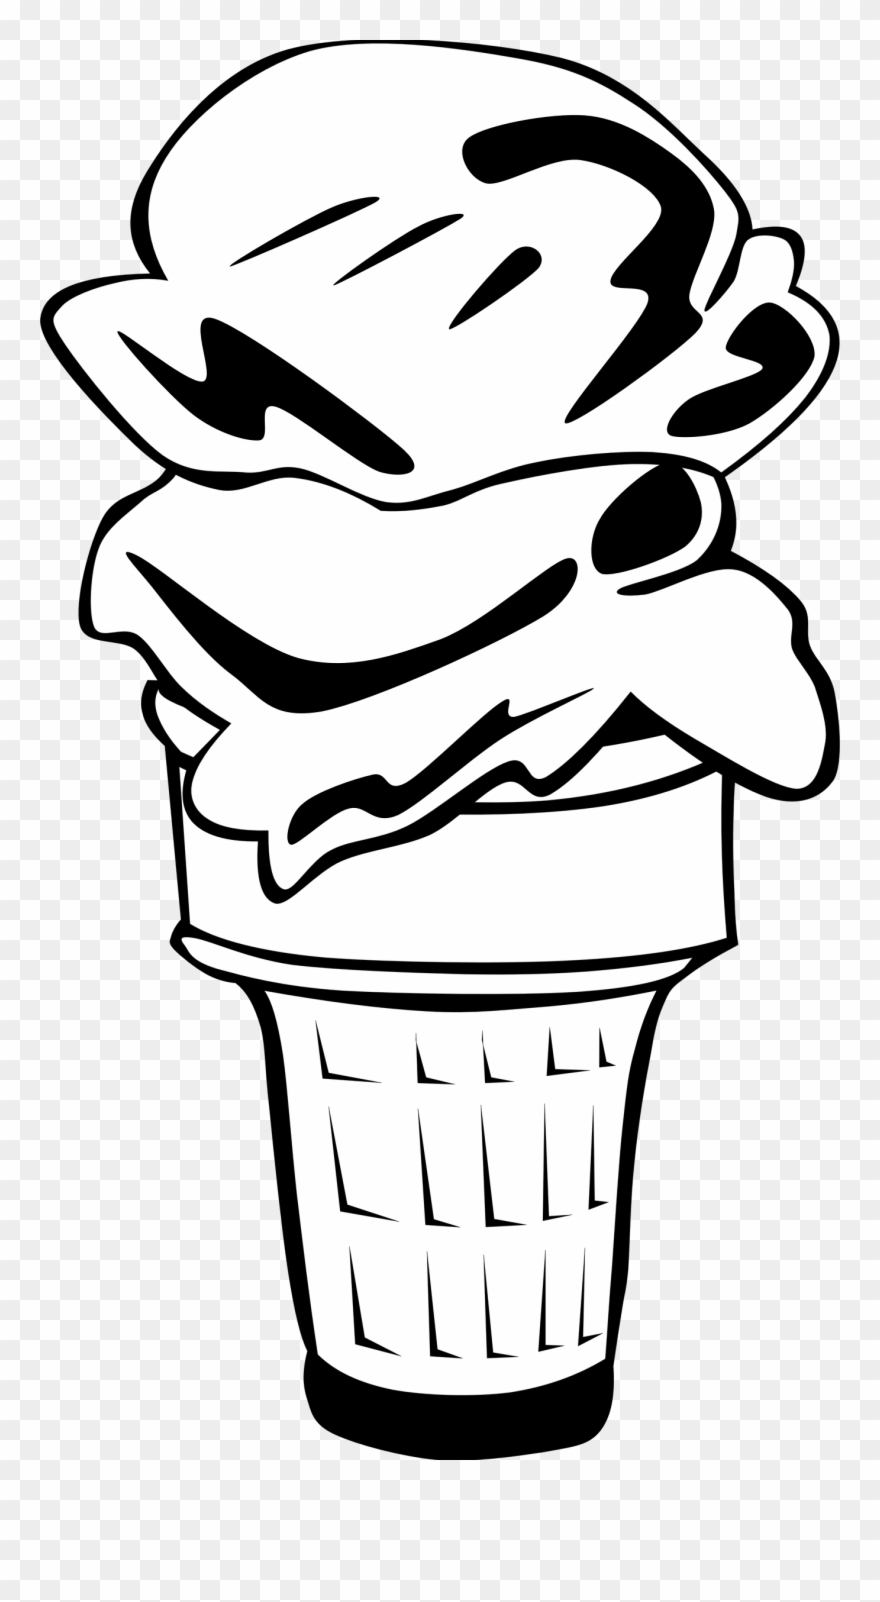 Free Ice Scoop Cliparts, Download Free Clip Art, Free Clip Art on Clipart  Library